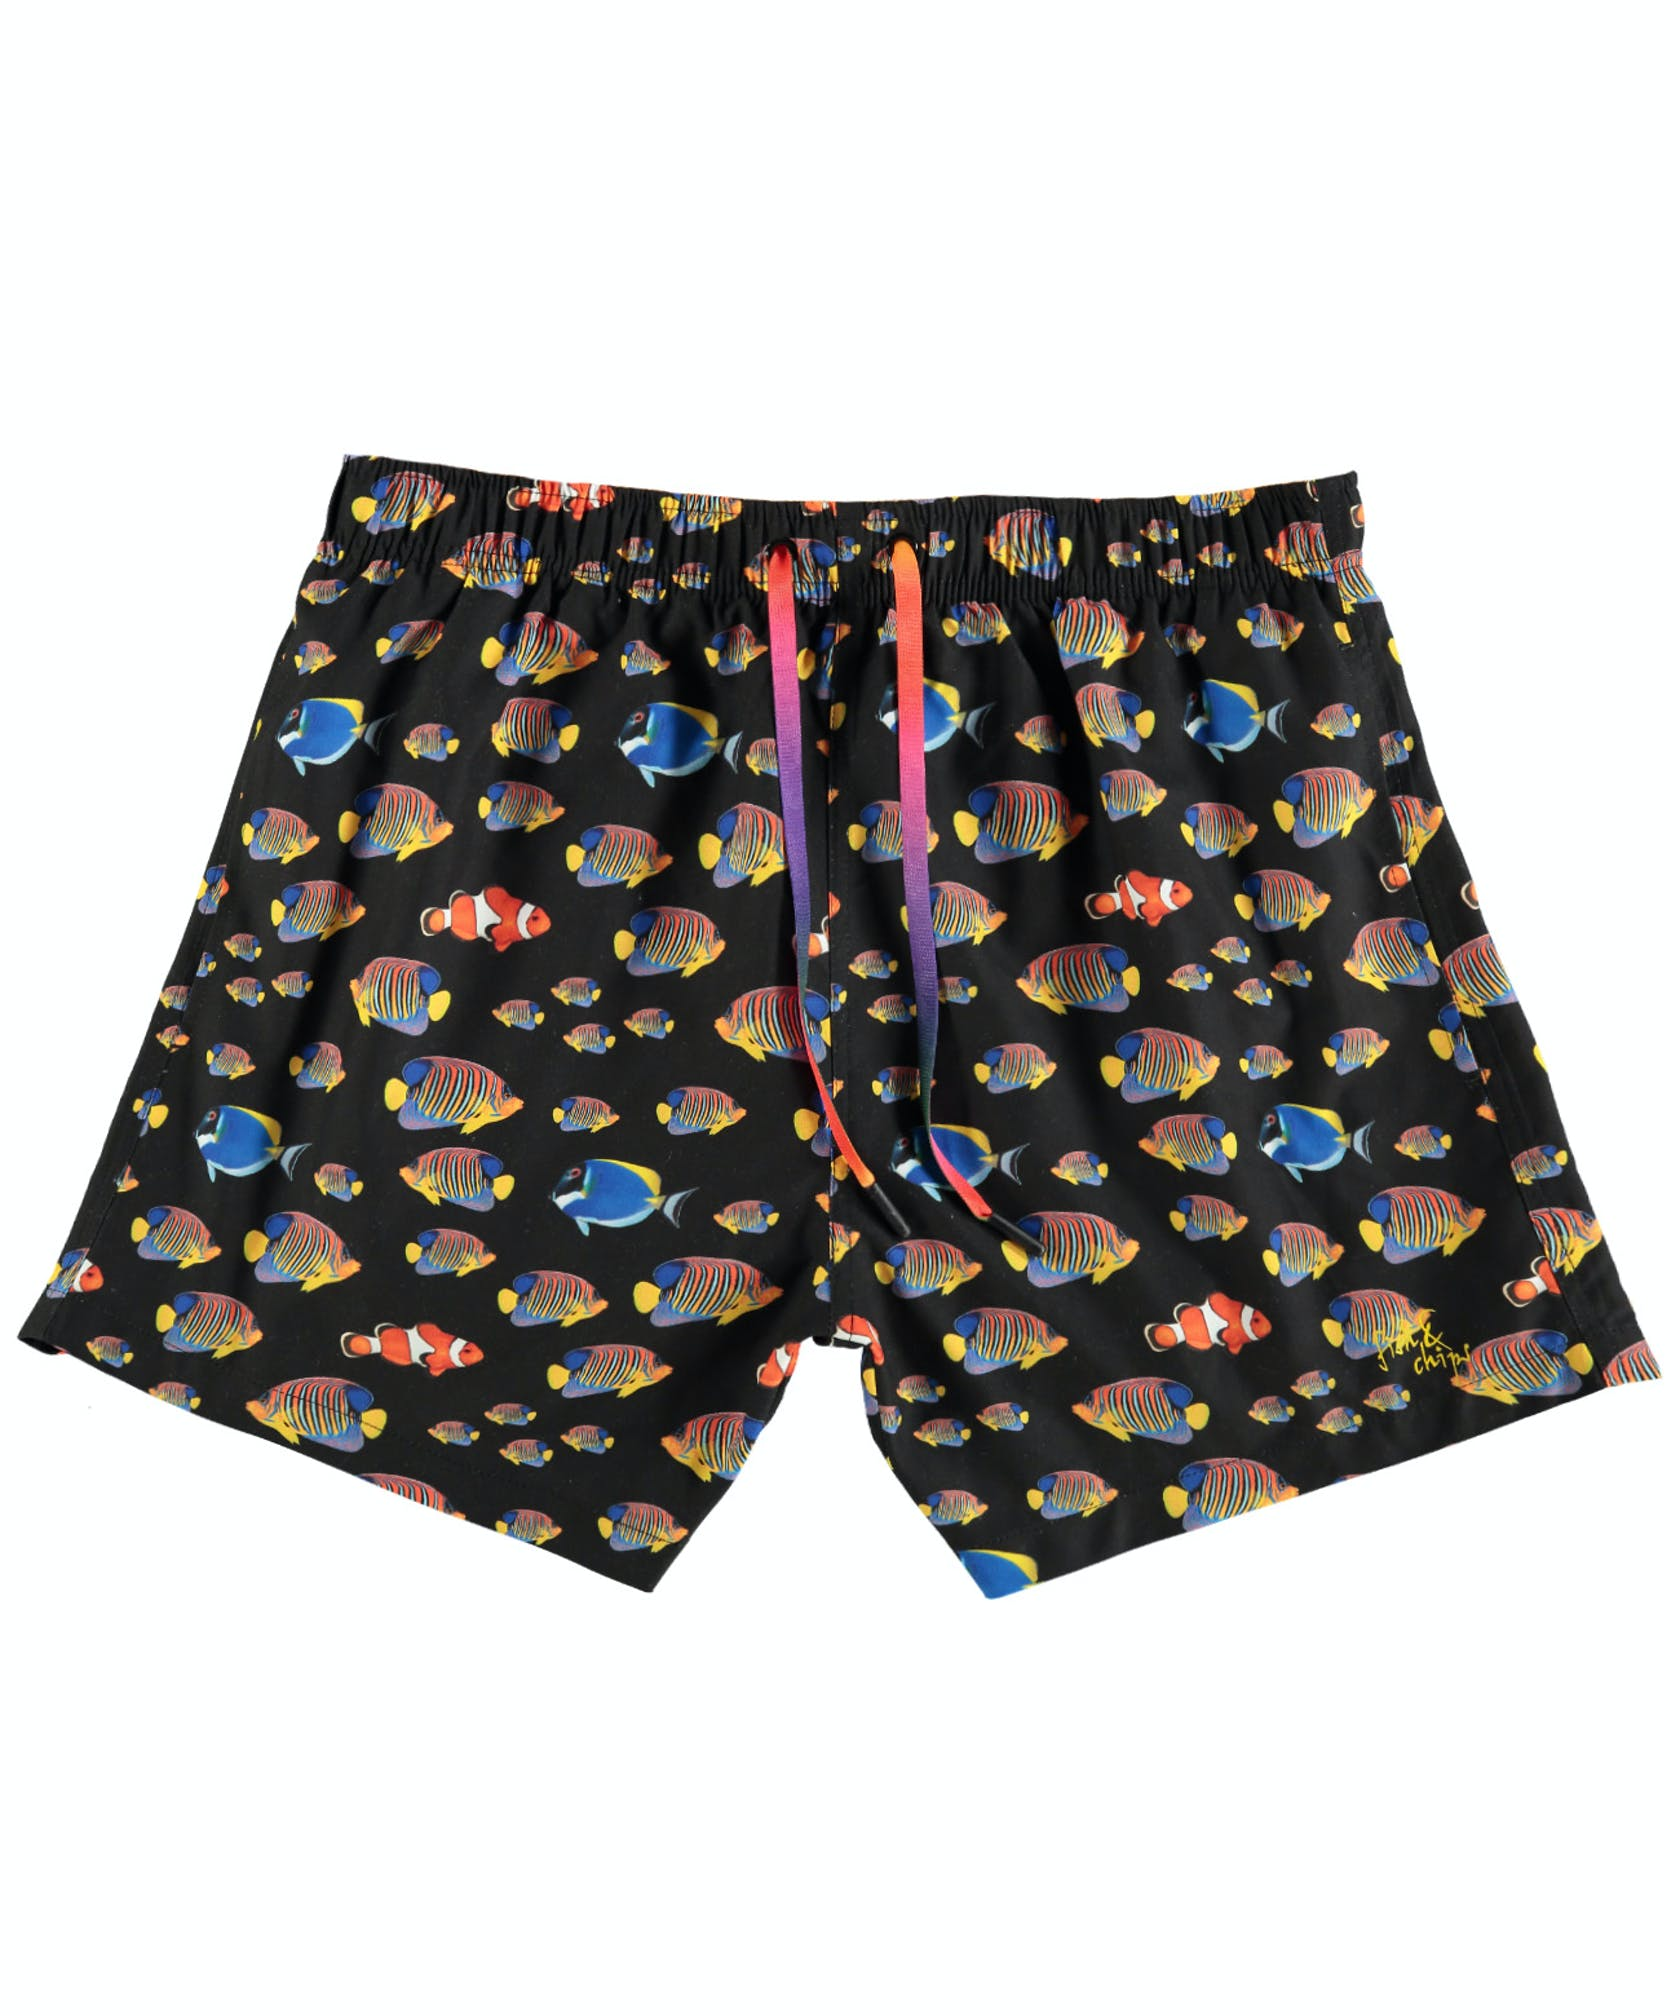 "RAGMAN Bade-Shorts ""Fisch"""